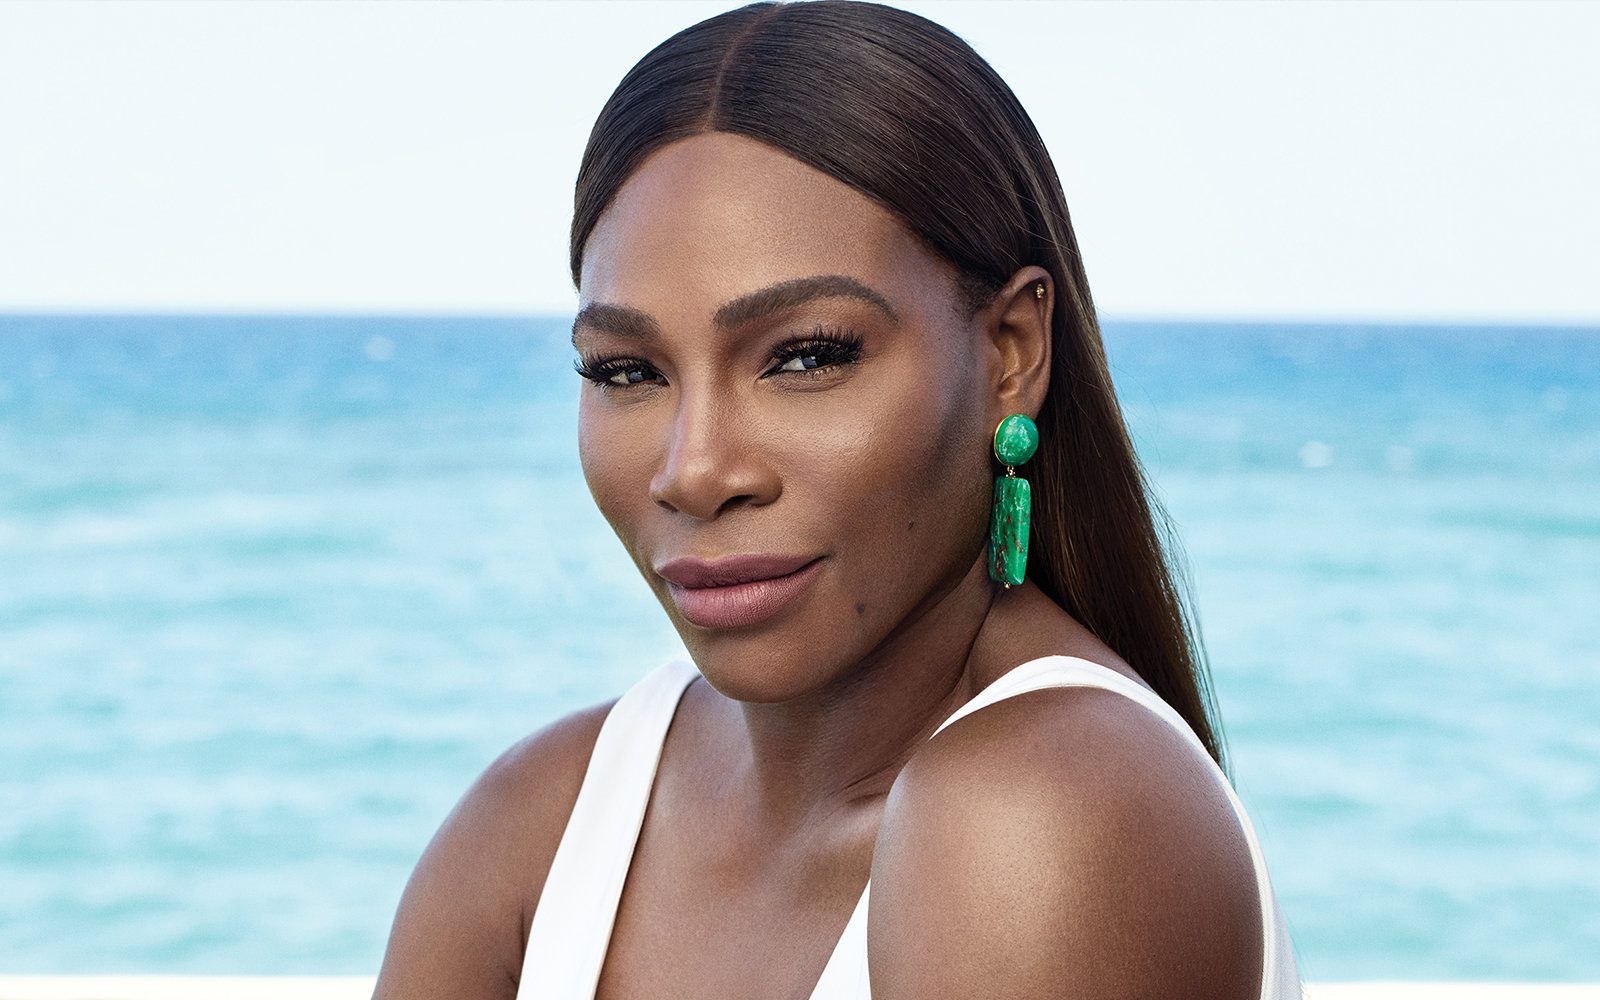 Serena Williams Perfect Eyebrows And Full Lips Star On